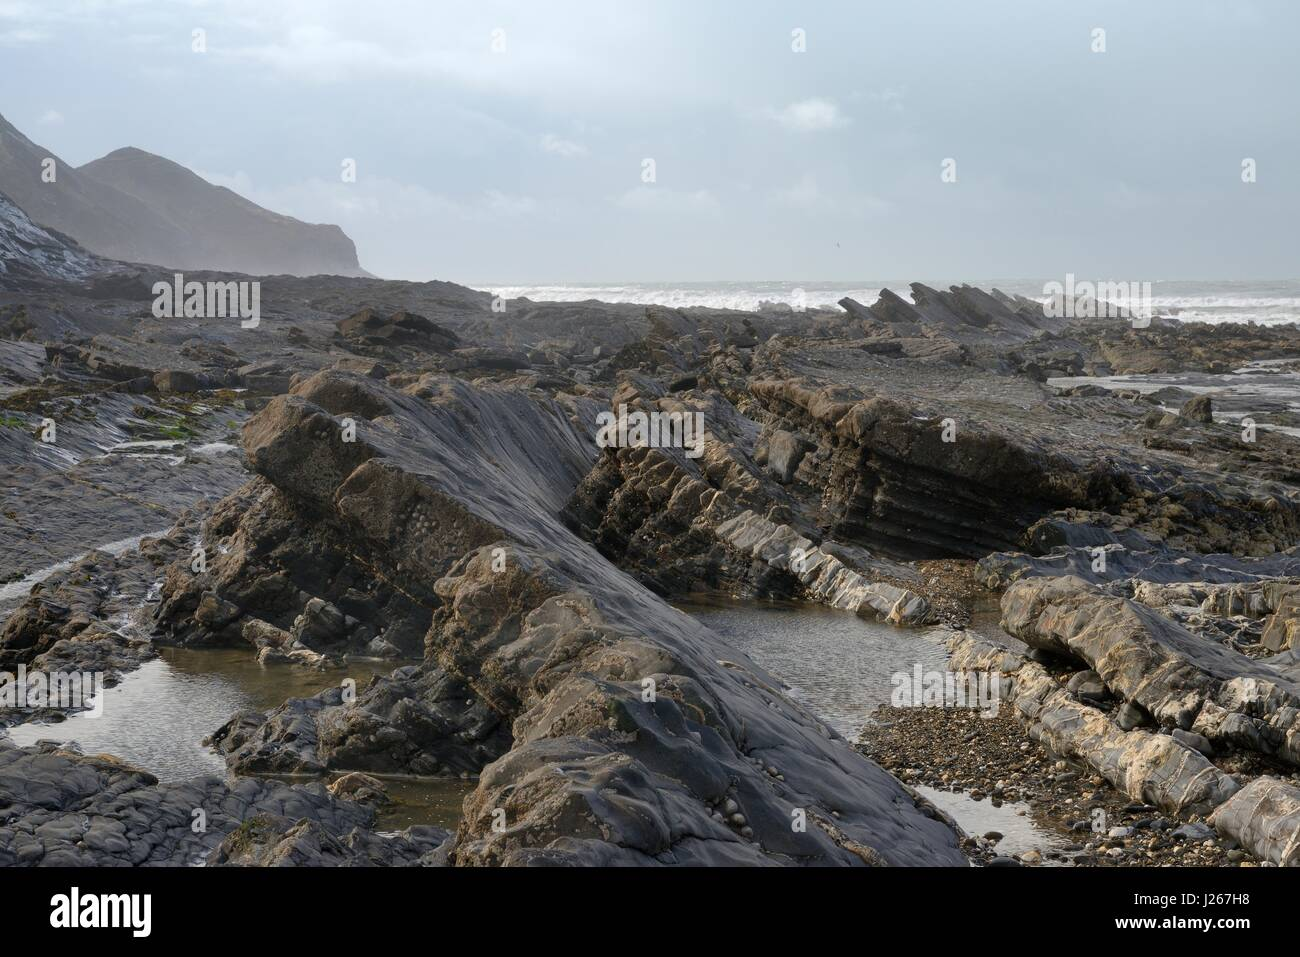 Fractured, twisted layers of mudstone and black shale exposed at low tide, Crackington Haven, Cornwall, UK, March. - Stock Image